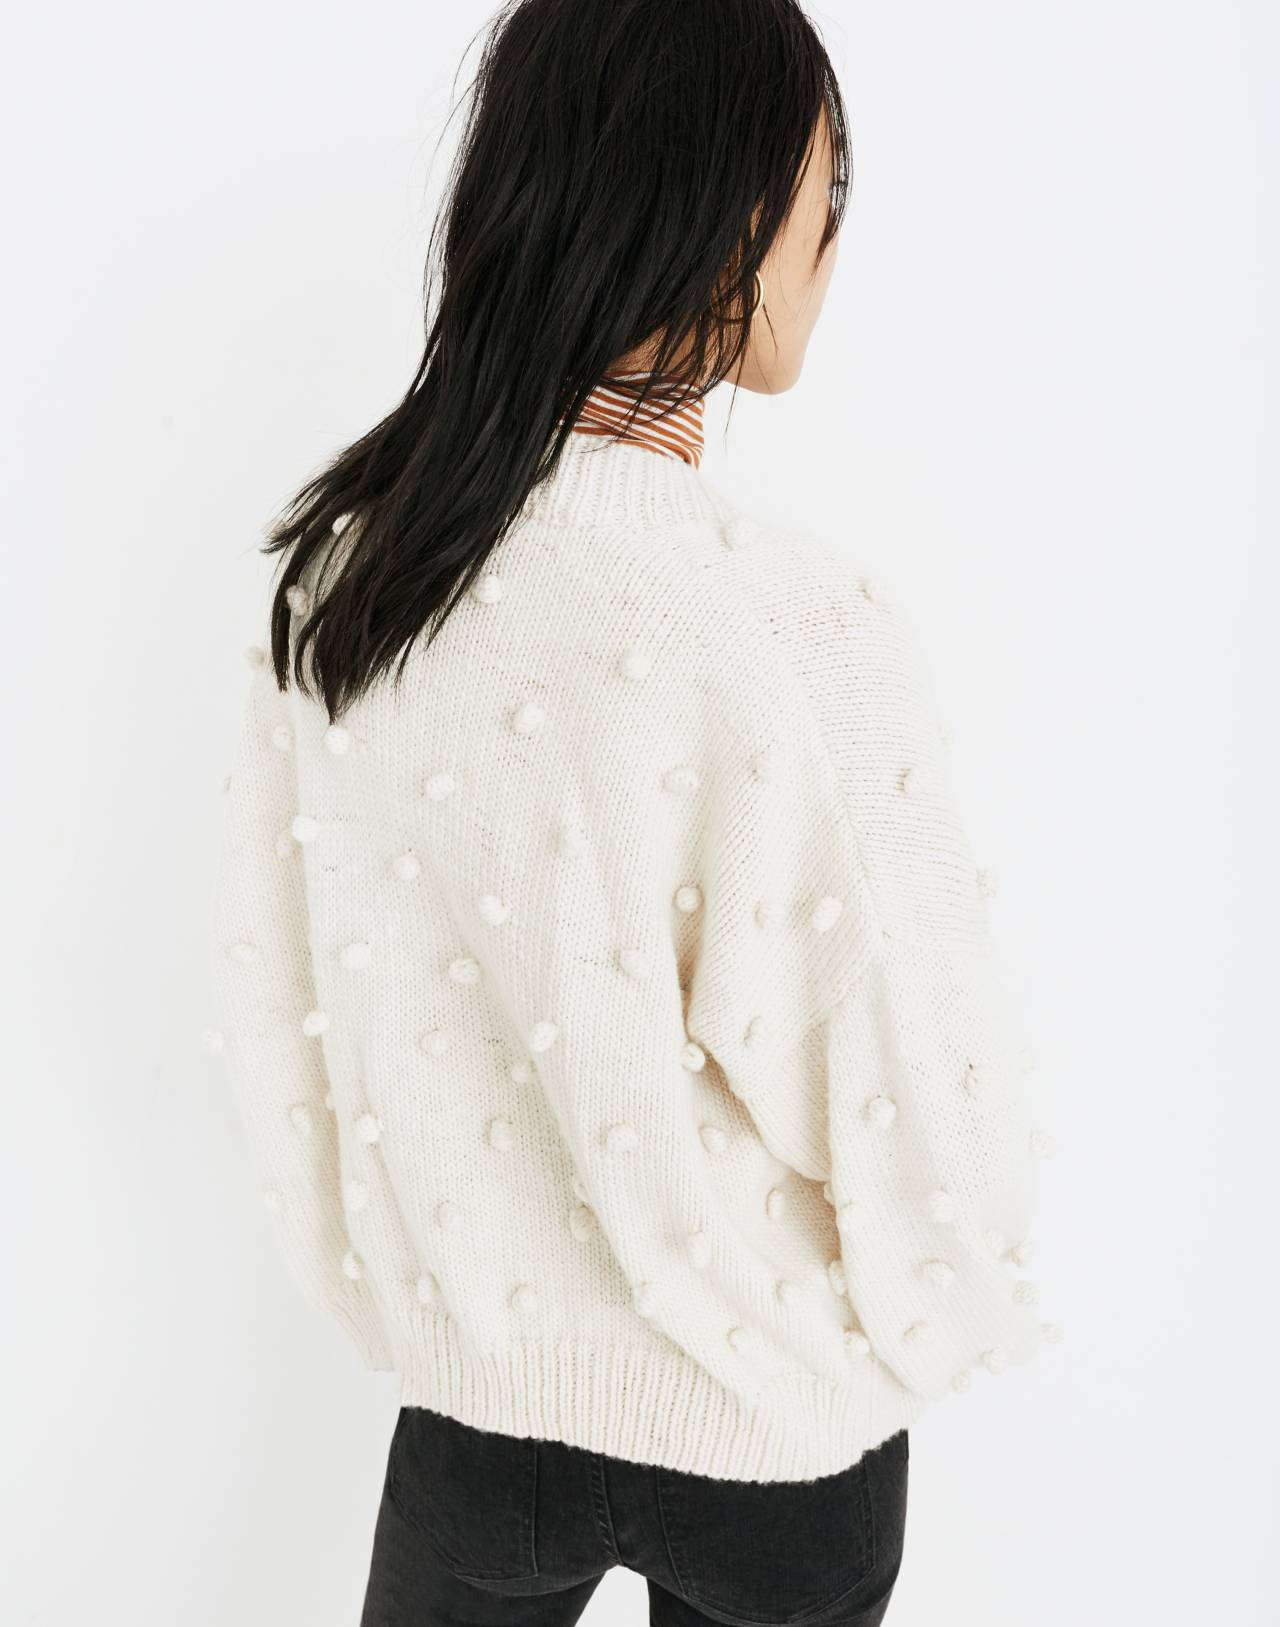 Madewell x Manos del Uruguay™ Bobble Cardigan Sweater in natural image 3